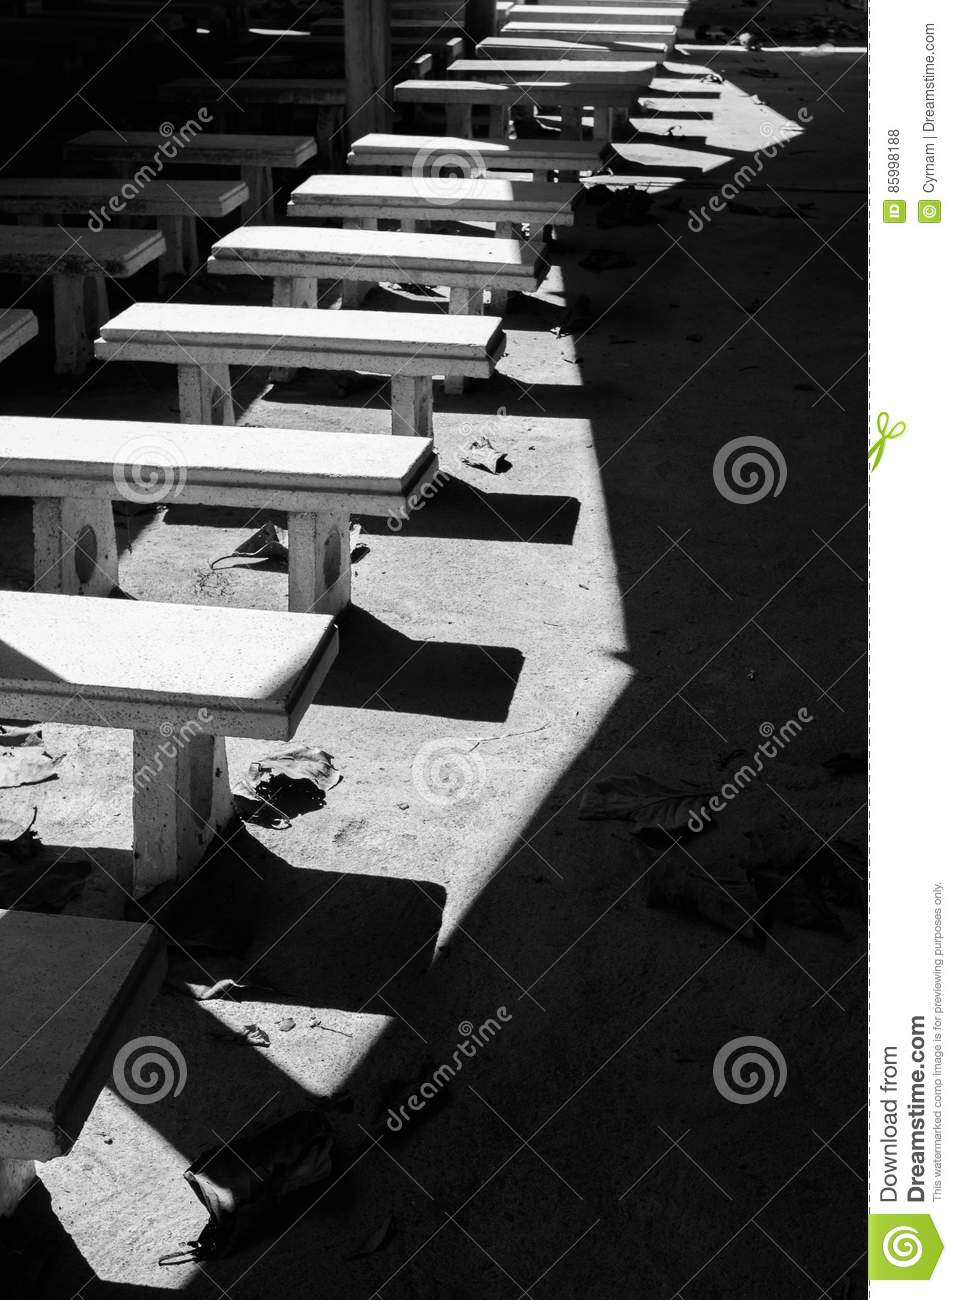 Pleasant Picturesque Rows Of White Stone Benches Perfectly Aligned Alphanode Cool Chair Designs And Ideas Alphanodeonline